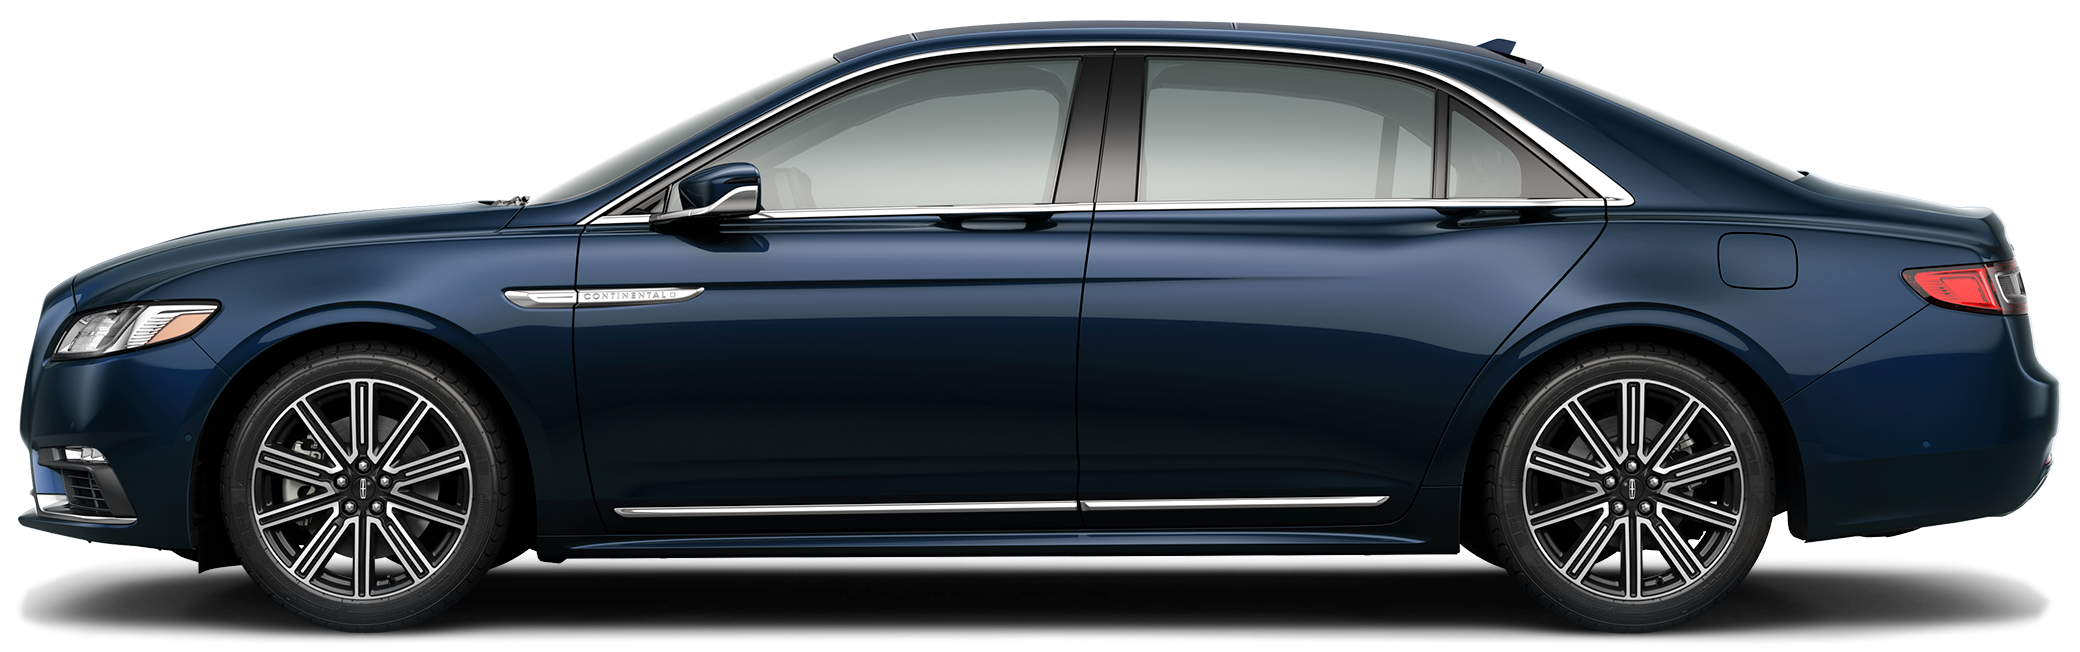 2019 Lincoln Continental Sedan Reserve